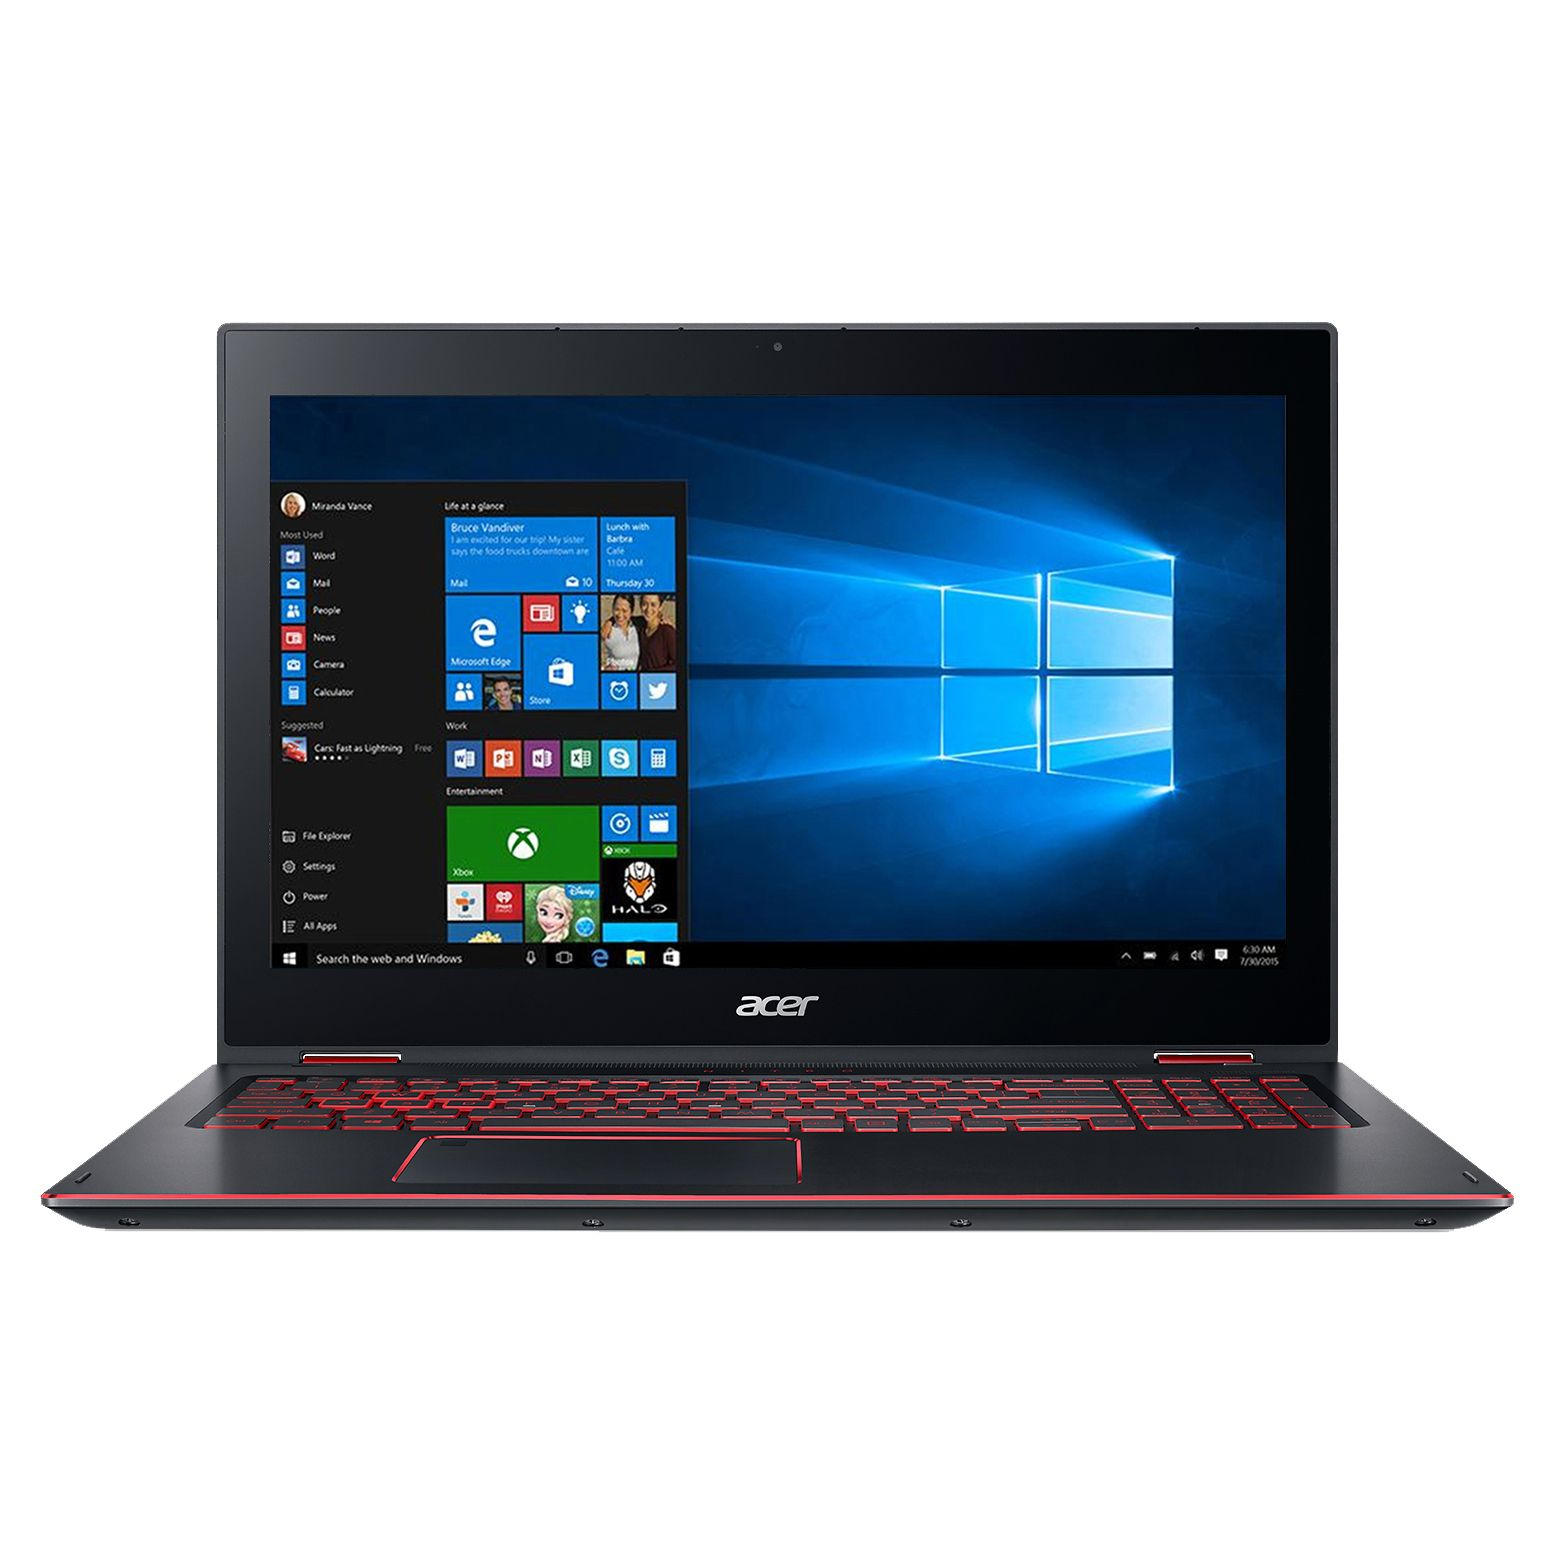 Notebook Acer Nitro Spin 5 NP515-51 15.6 Full HD Touch Intel Core i5-8250U GTX 1050-4GB RAM 8GB HDD 1TB + SSD 256GB Windows 10 Home Negru